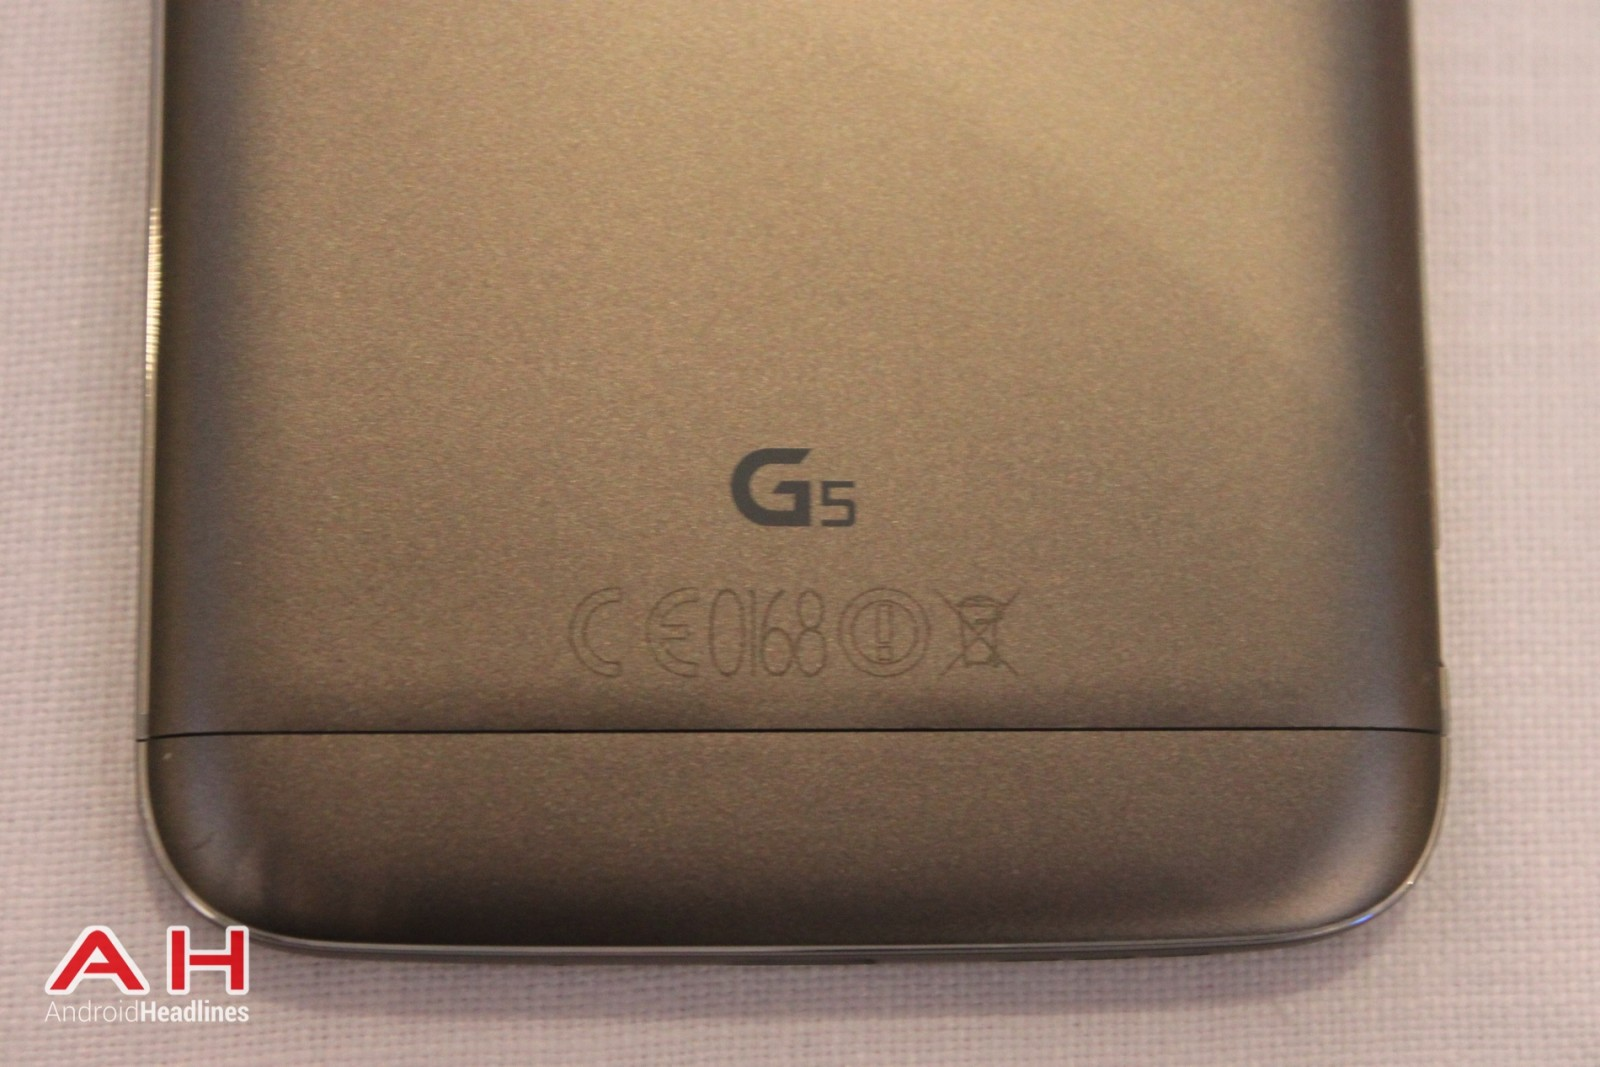 LG-G5-Hands-On-MWC-AH-11-1600x1067